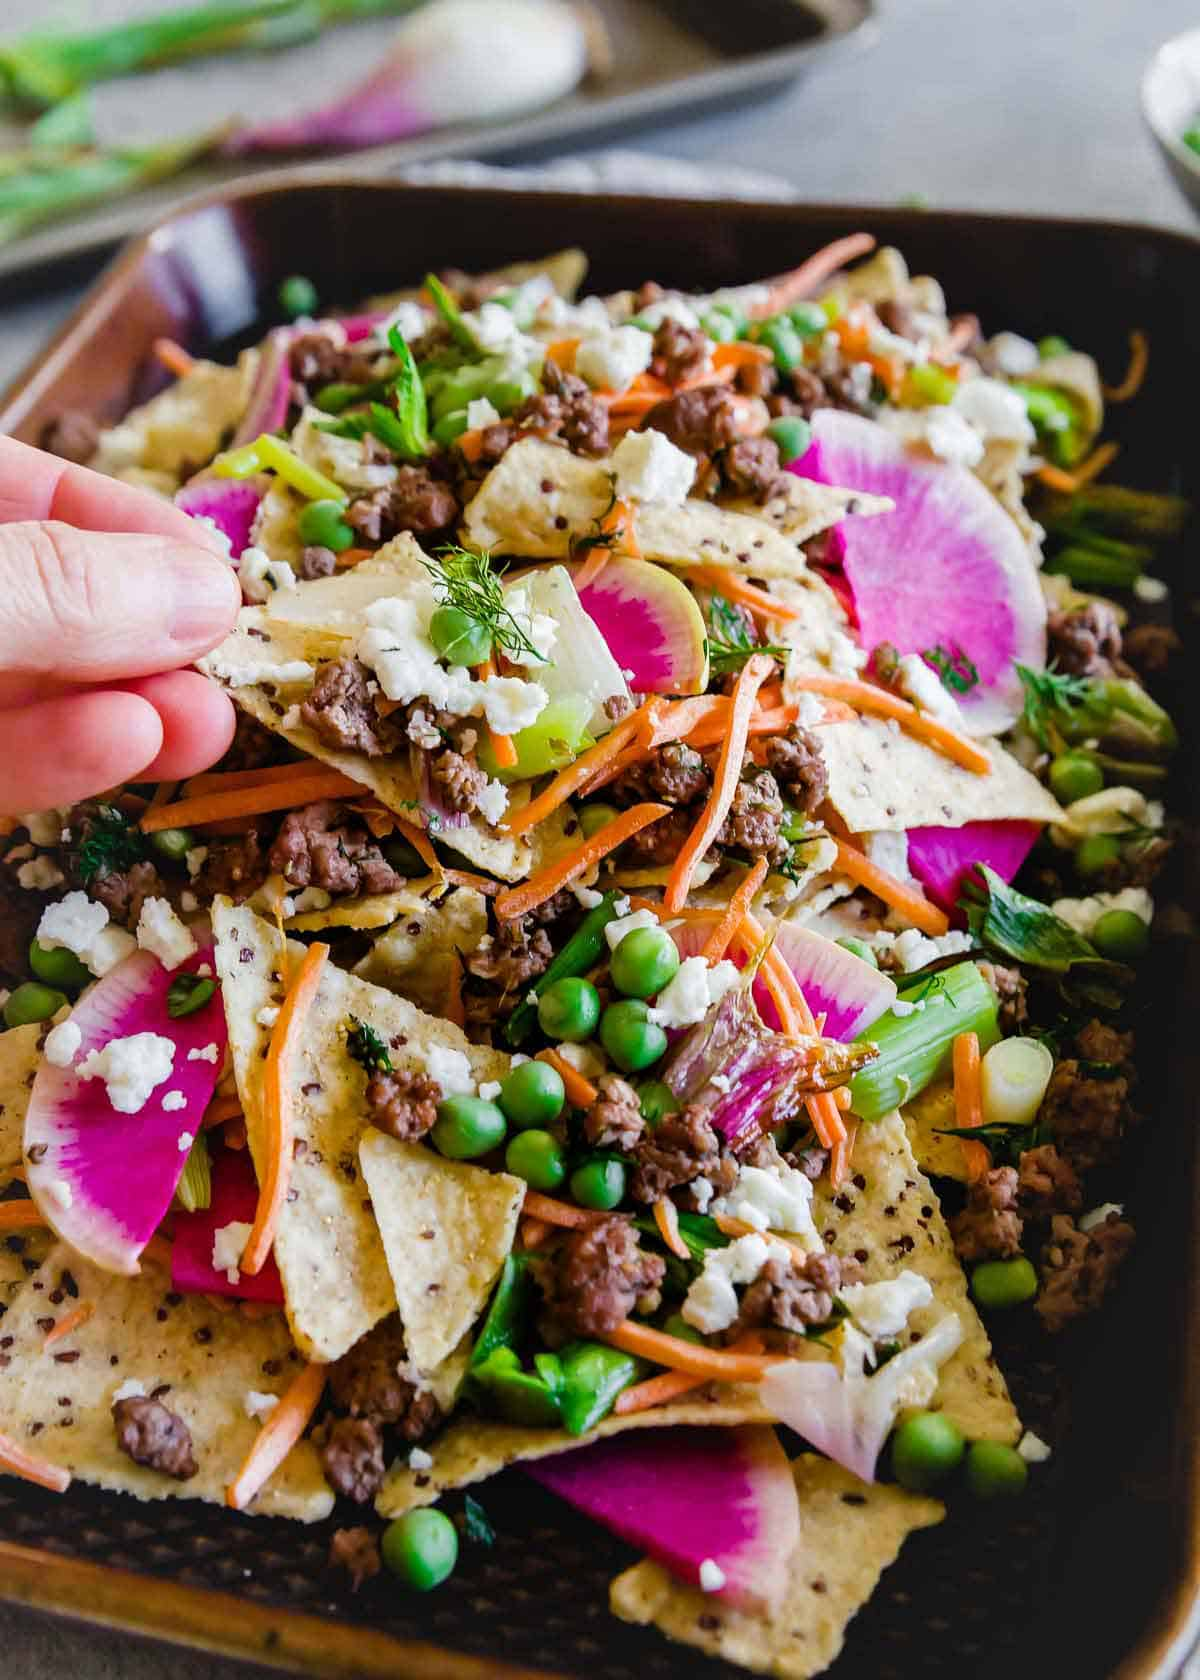 A fun spring spin on traditional nachos, these nachos use ground lamb seasoned with dill and oregano and lots of fresh spring vegetables.